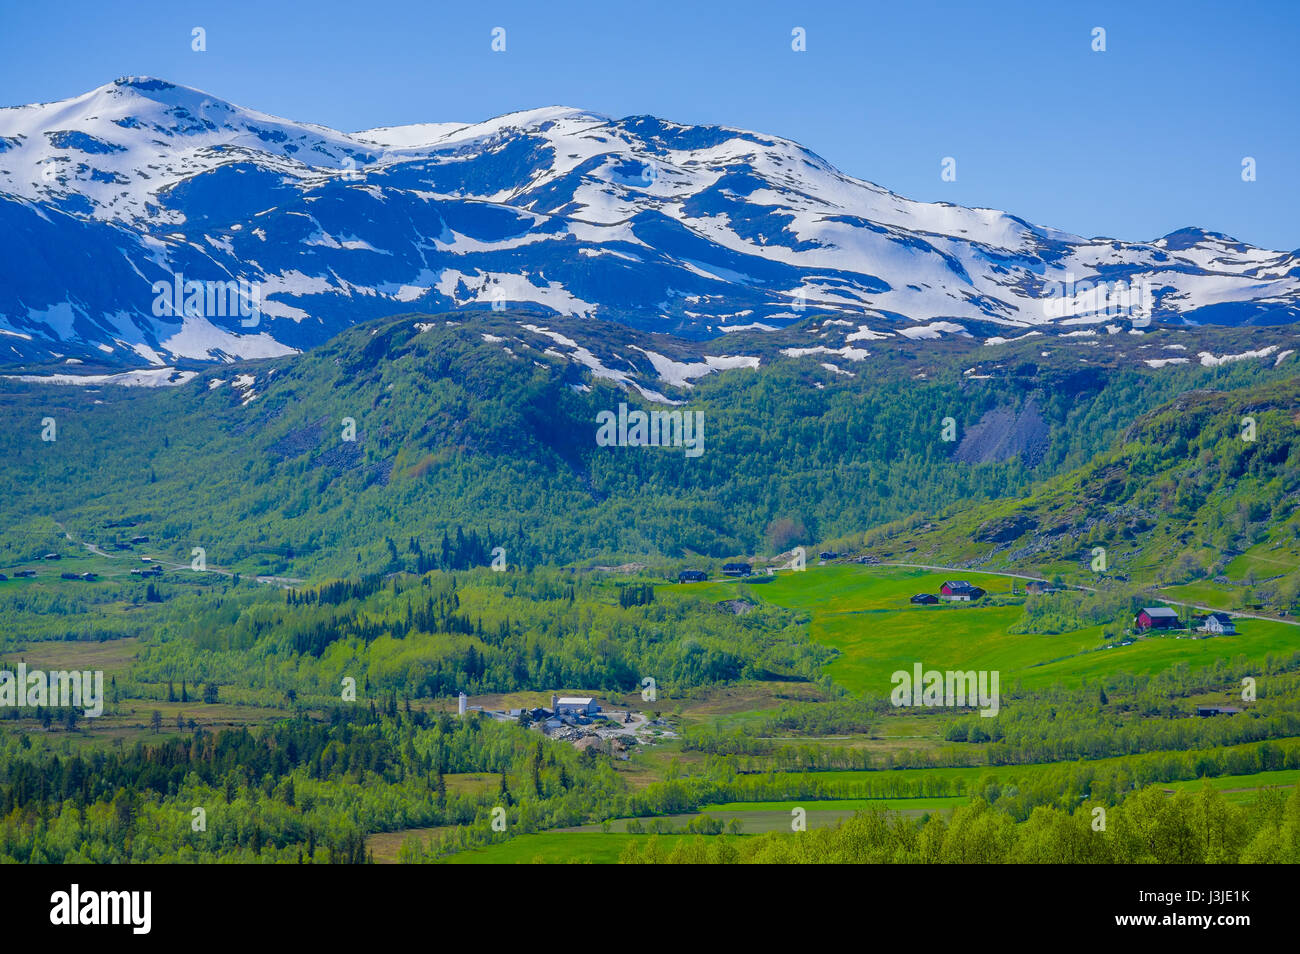 VALDRES, NORWAY - 6 JULY, 2015: Stunning nature on Valdresflya, green covered landscape stretches far as eye can - Stock Image